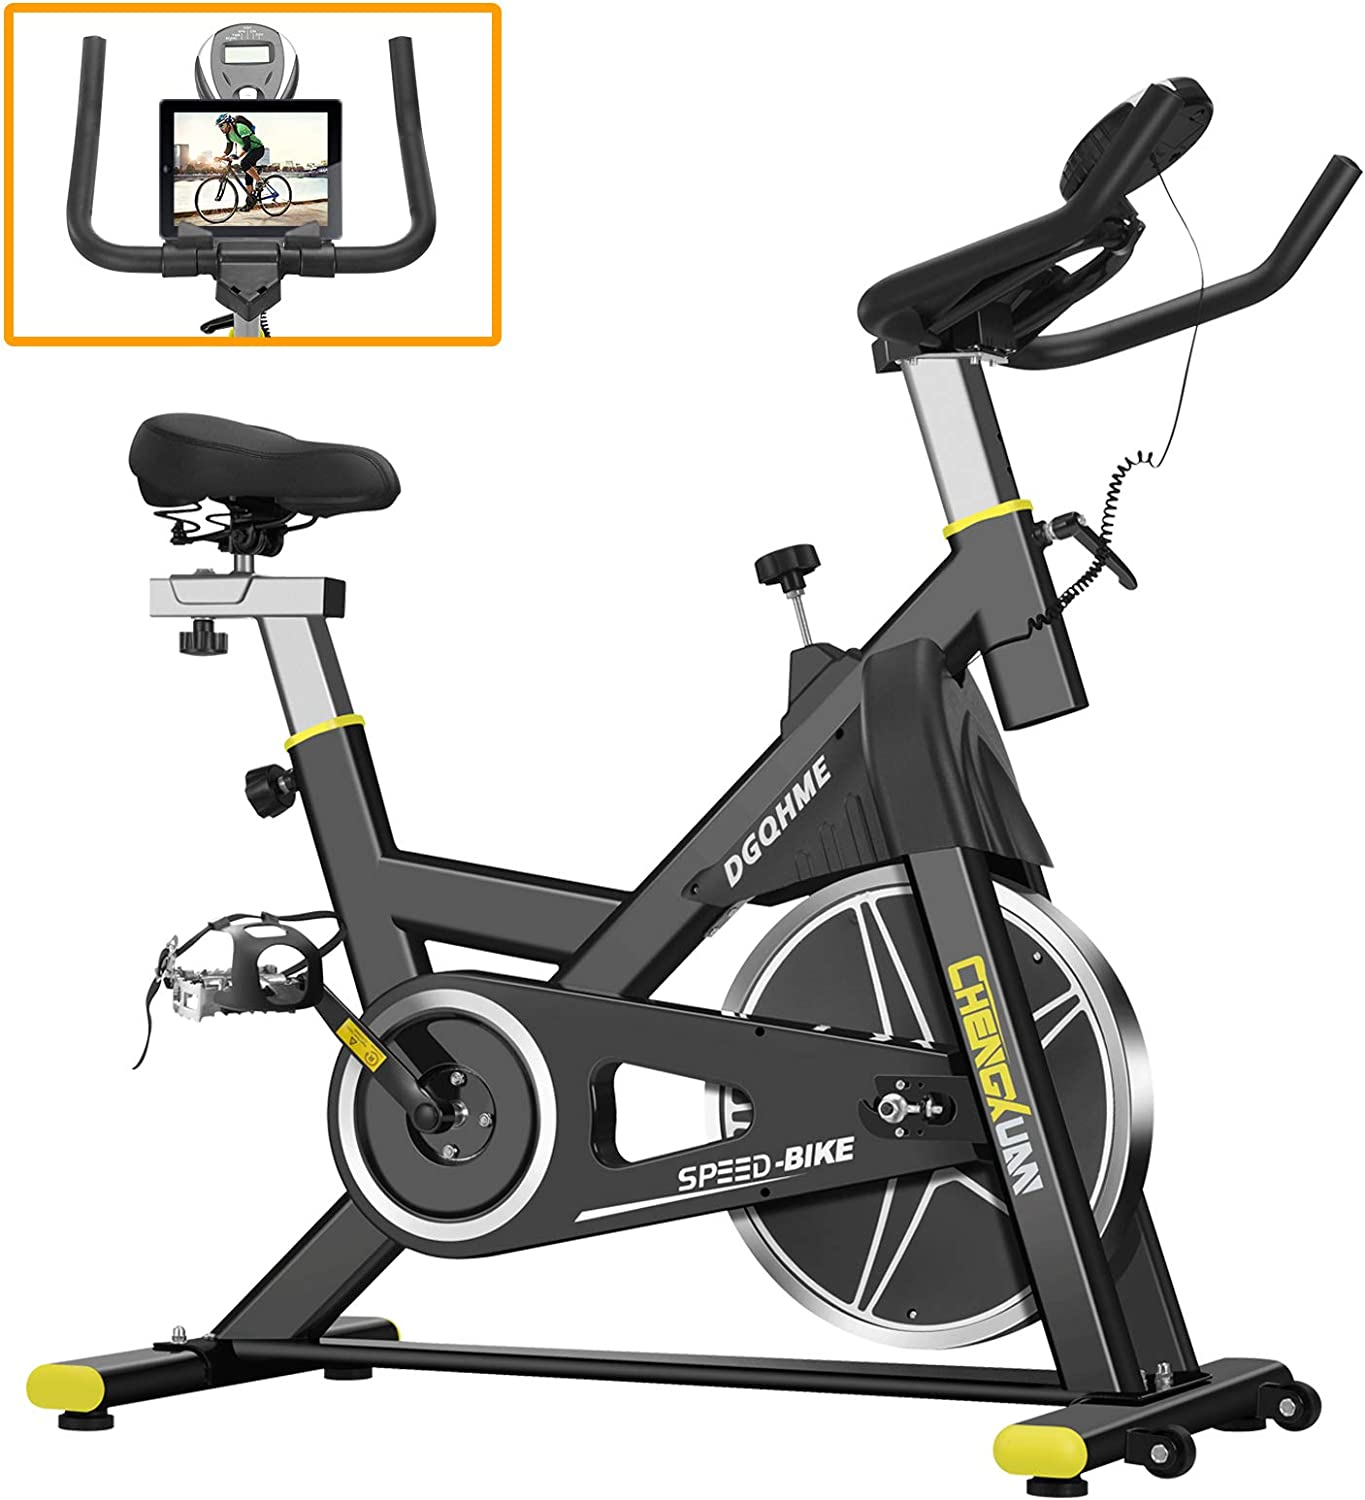 Stationary Comfortable Seat Monitor Holder Cushion LCD Monitor for Gym Home Cardio Workout Bike